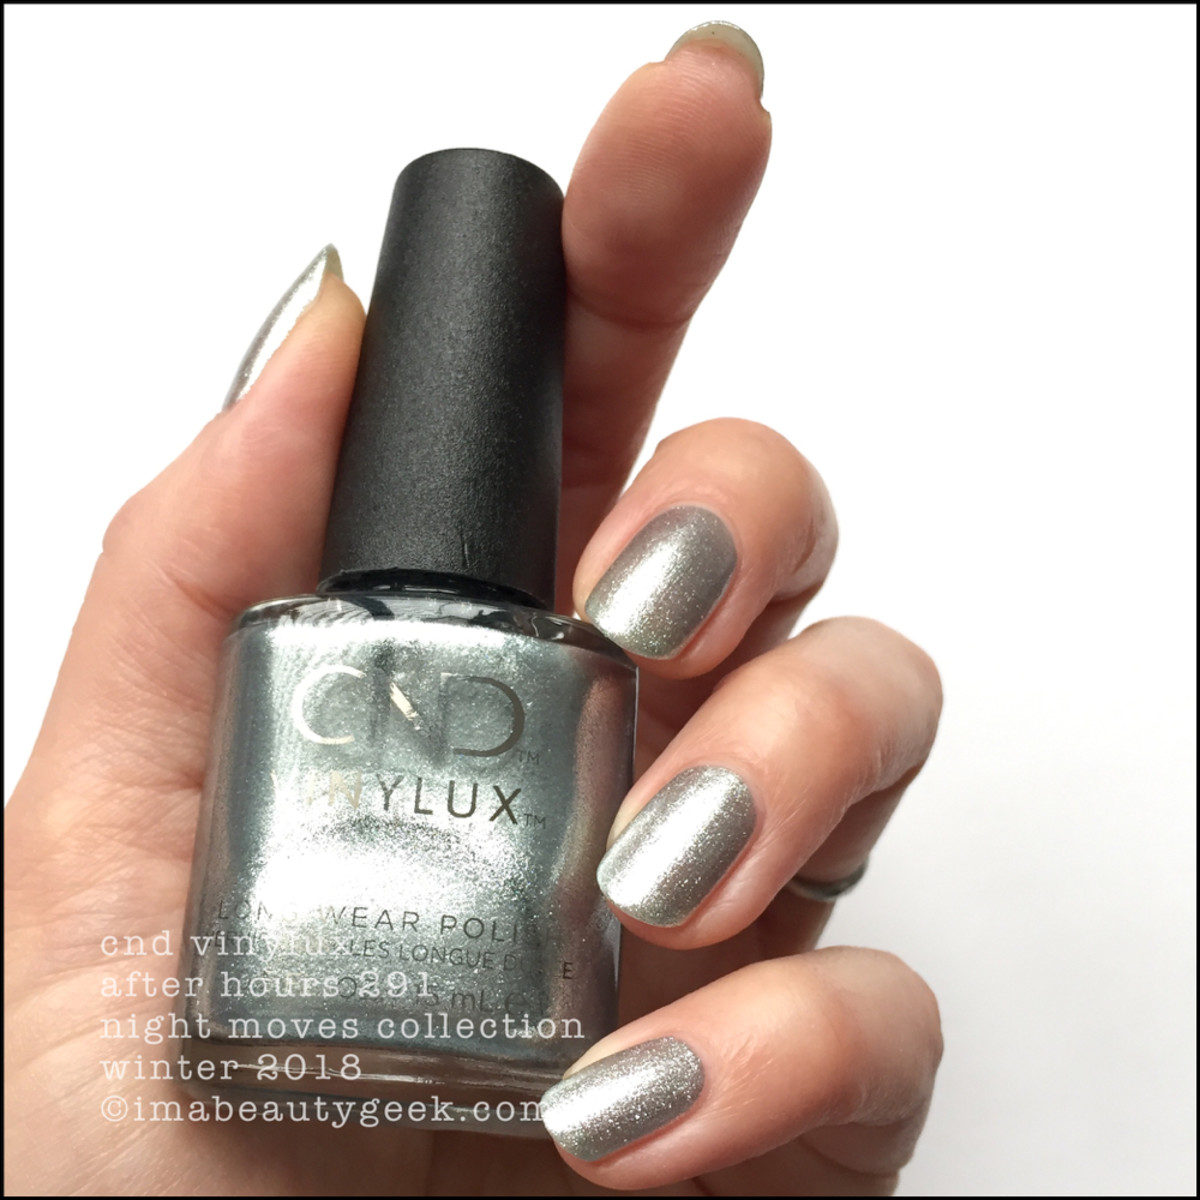 CND After Hours 291 - Vinylux Night Moves Collection 2018